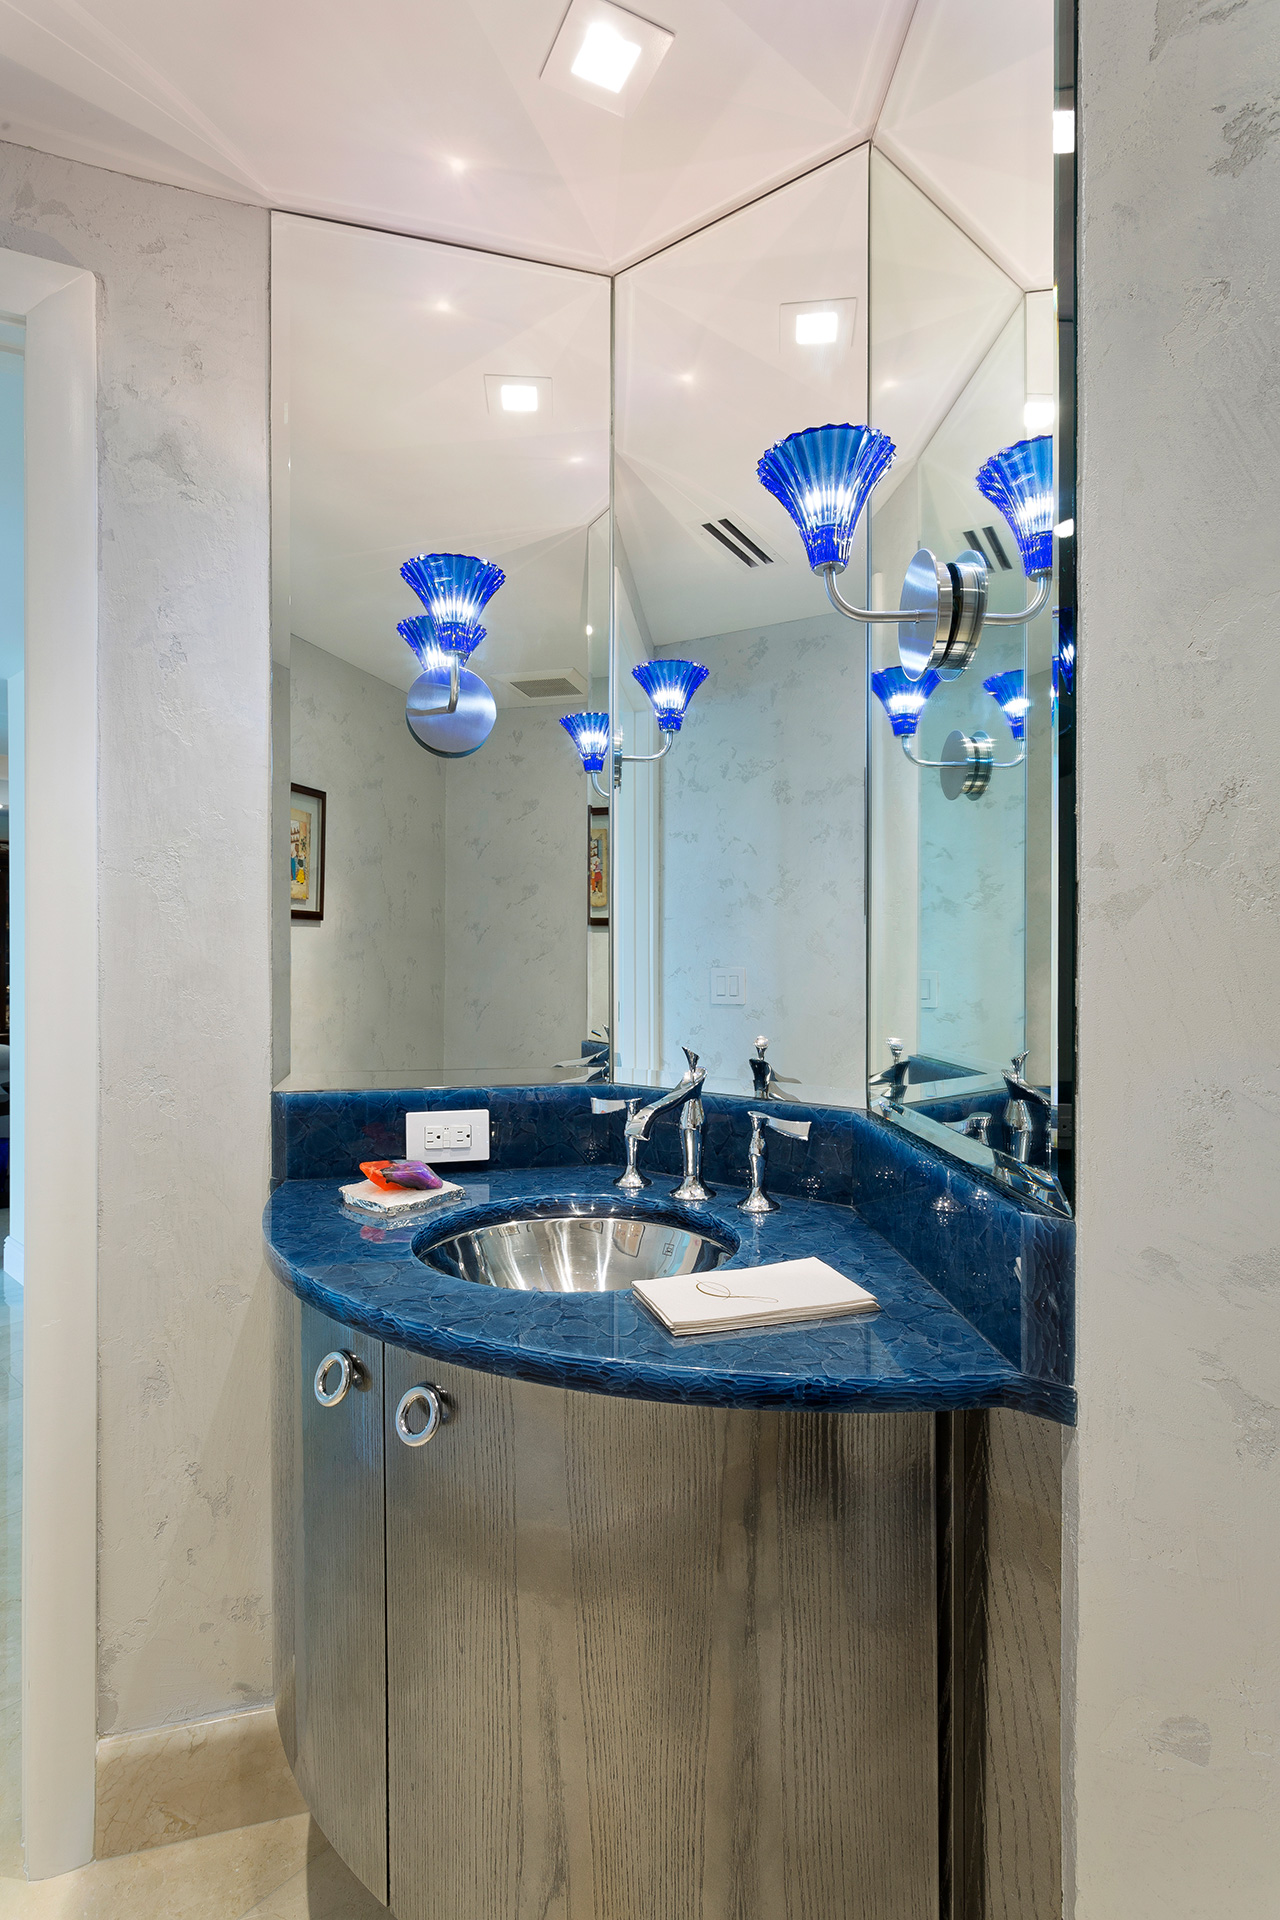 Contemporary Baths - The Place For Kitchens and Baths